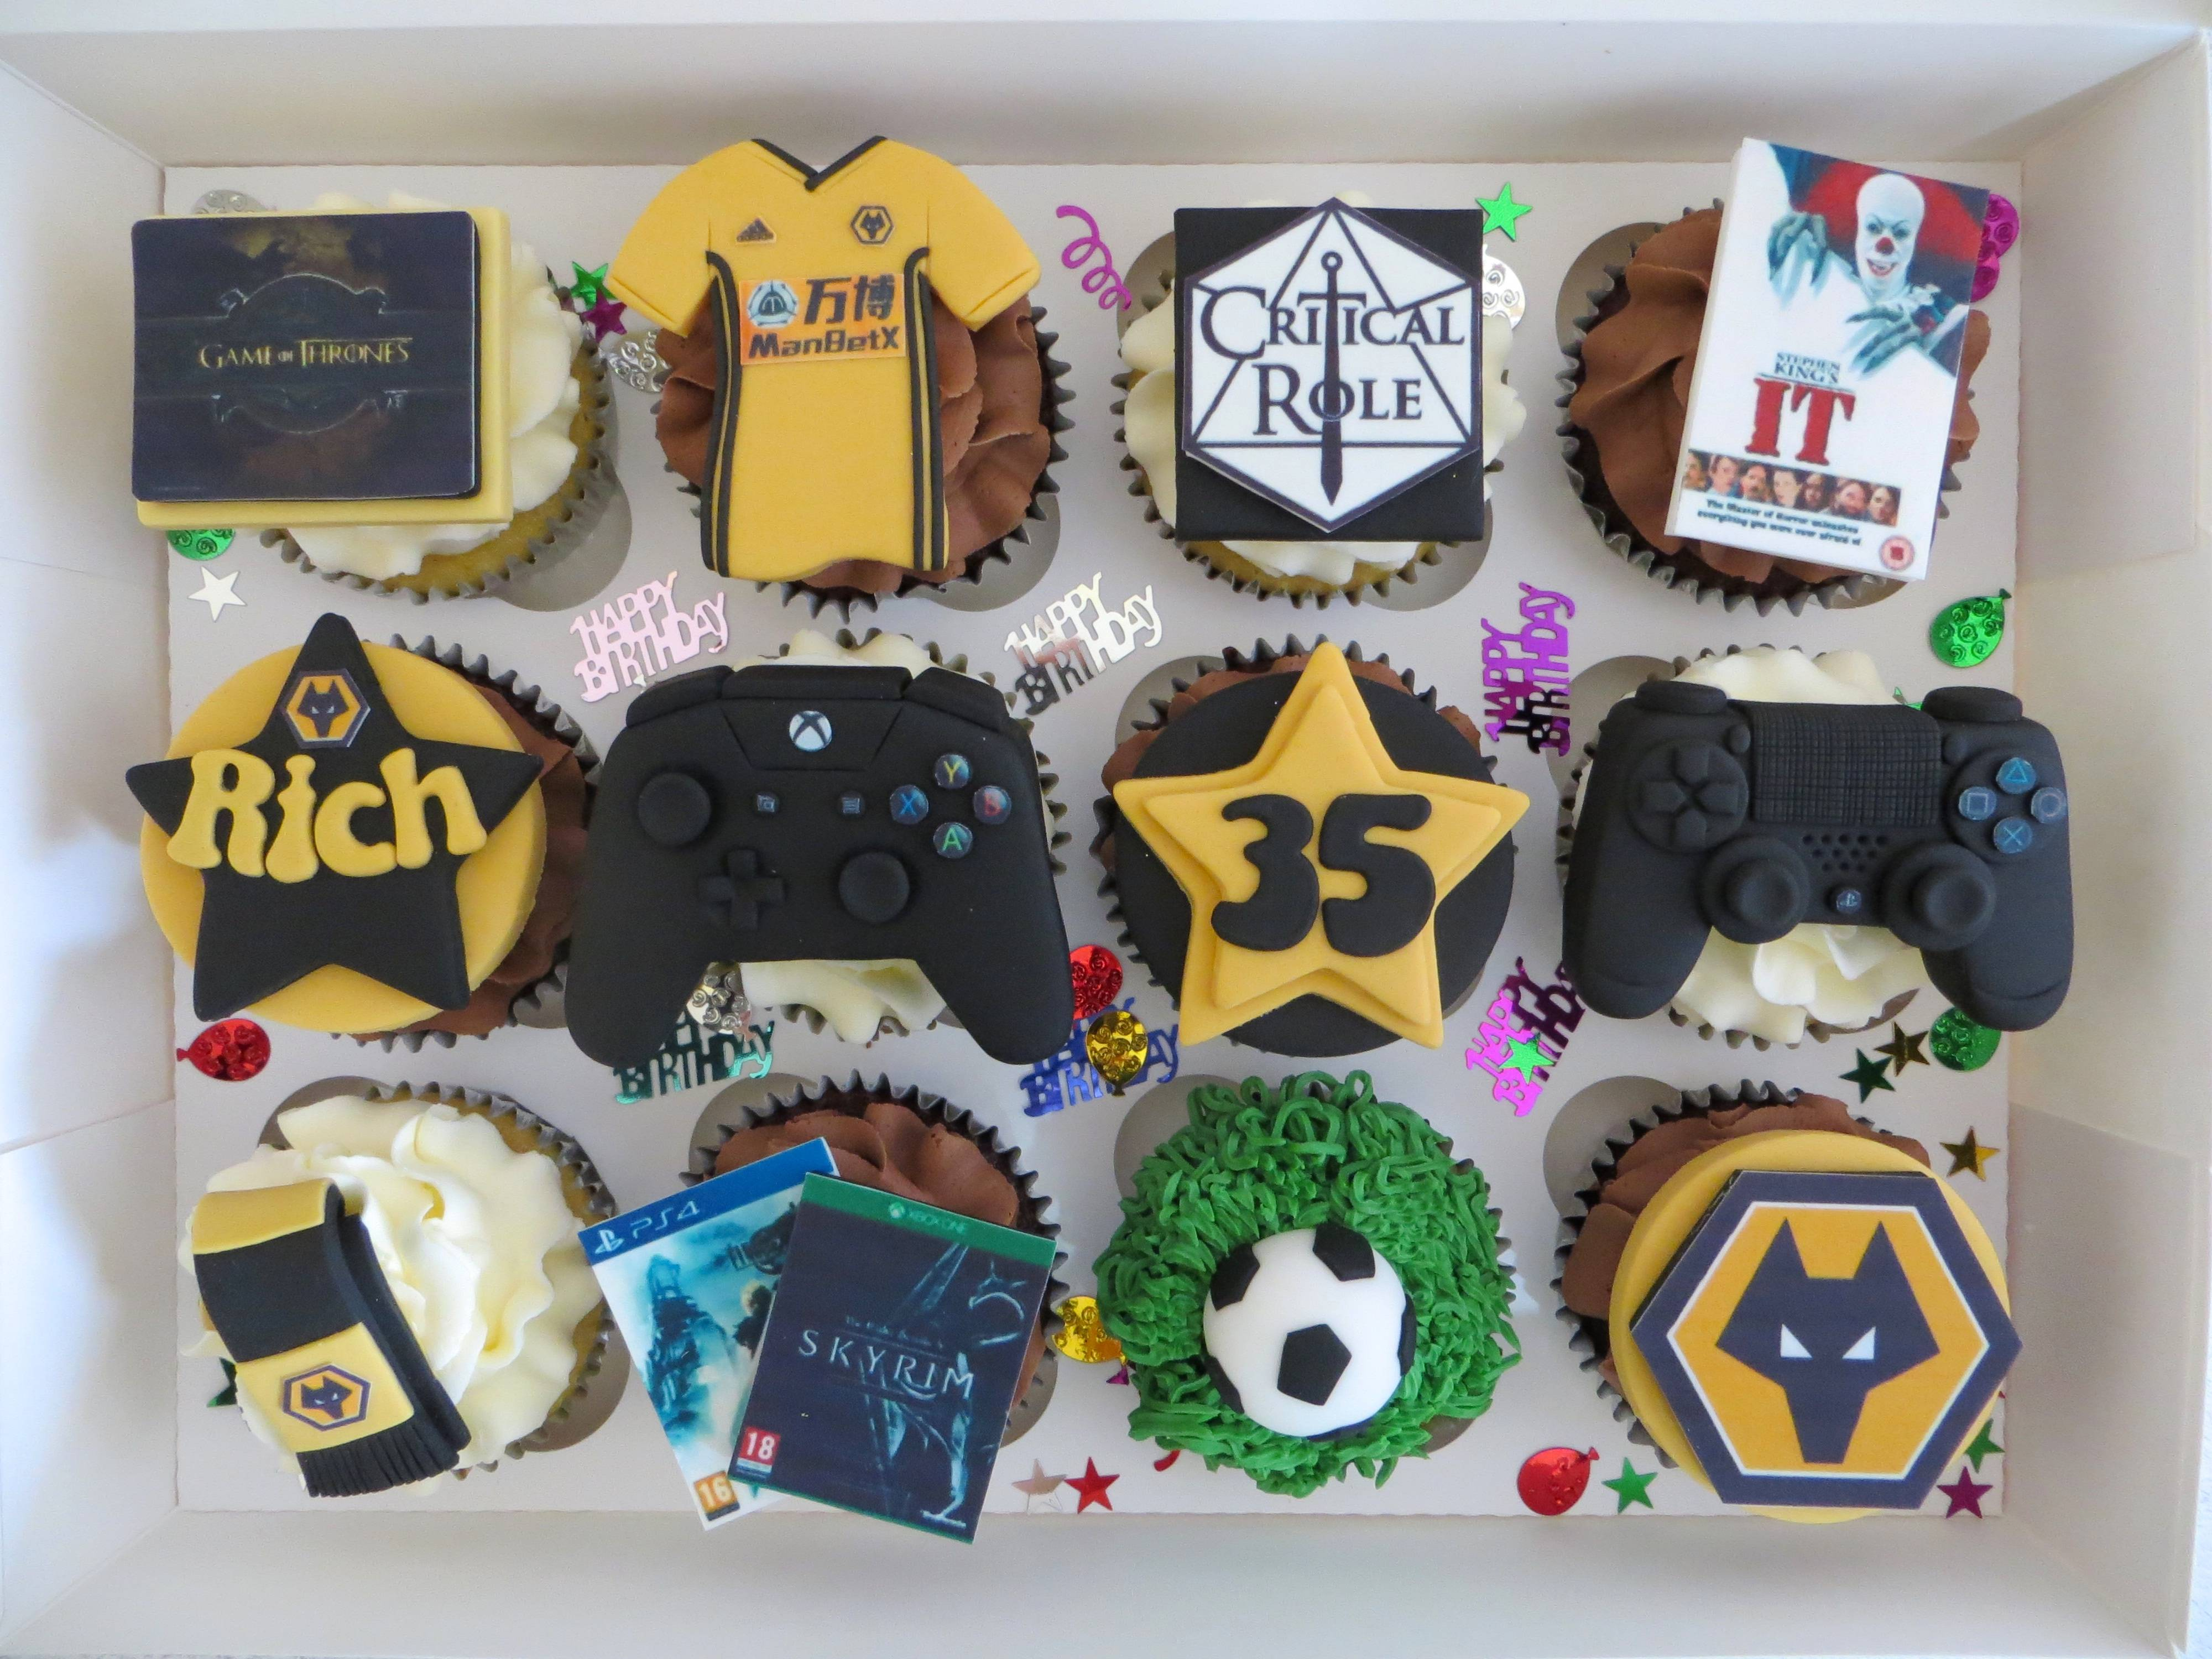 Rich's personalised birthday cupcakes